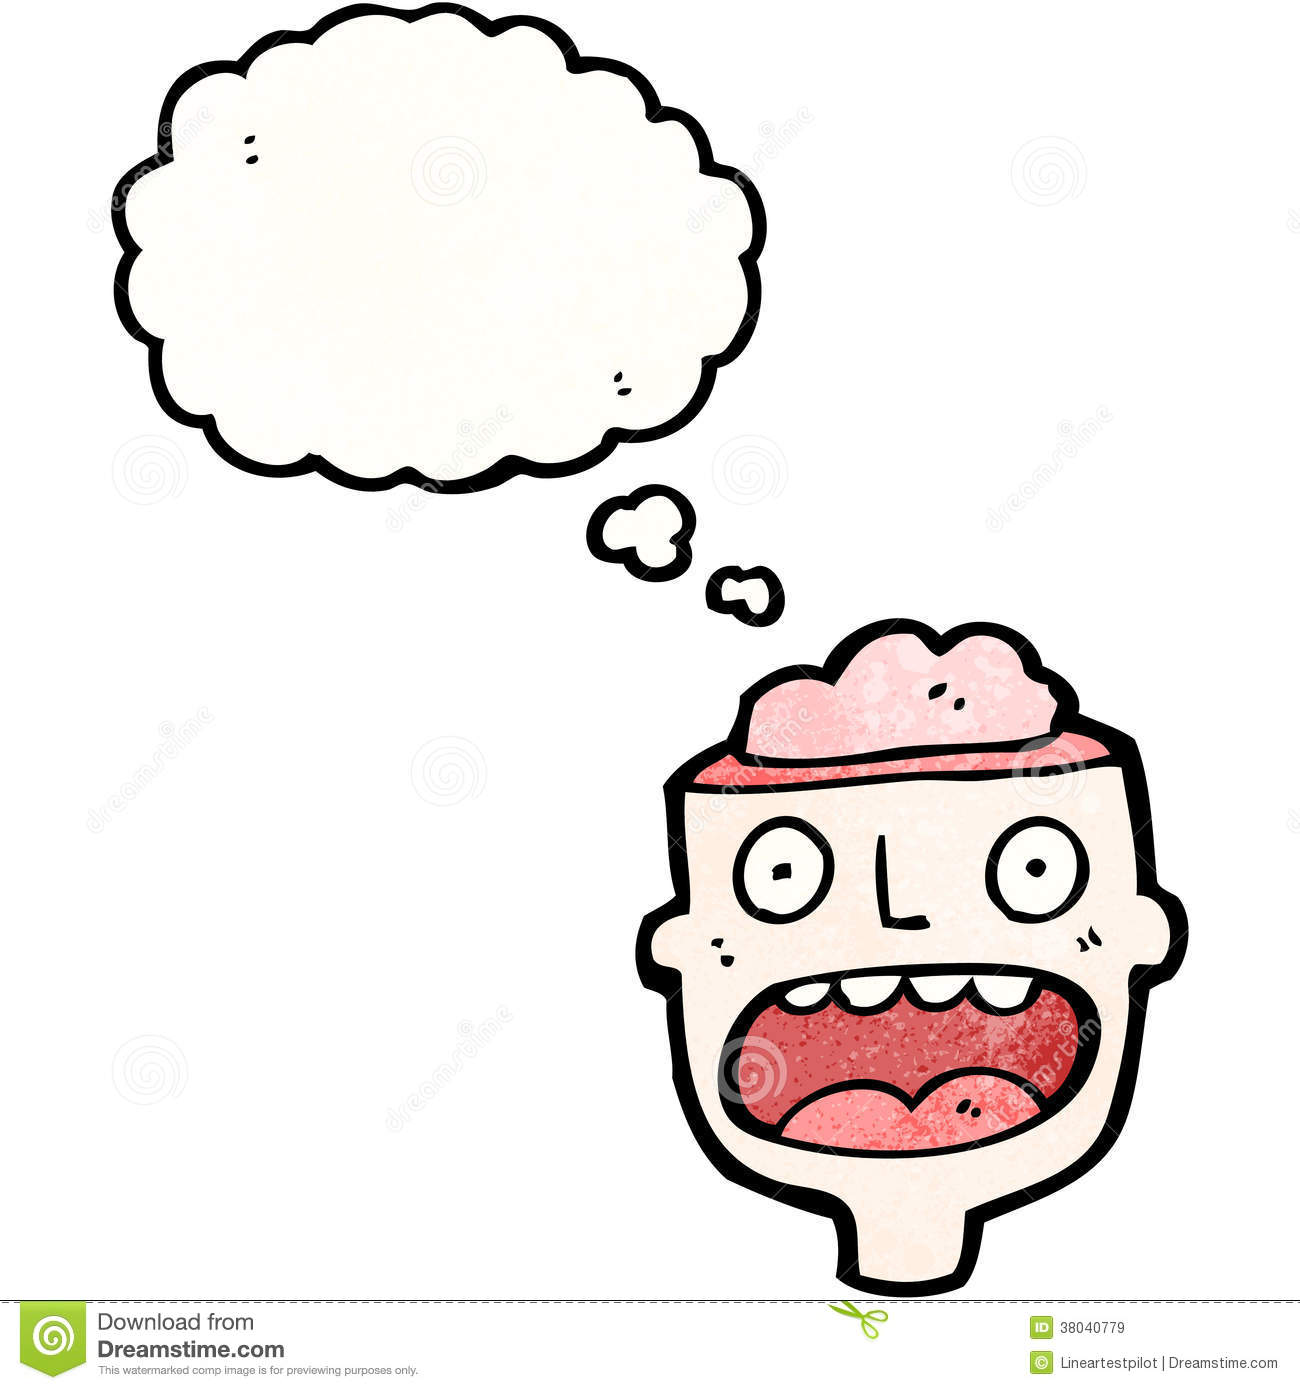 Minded cartoon character royalty free stock images image 38040779